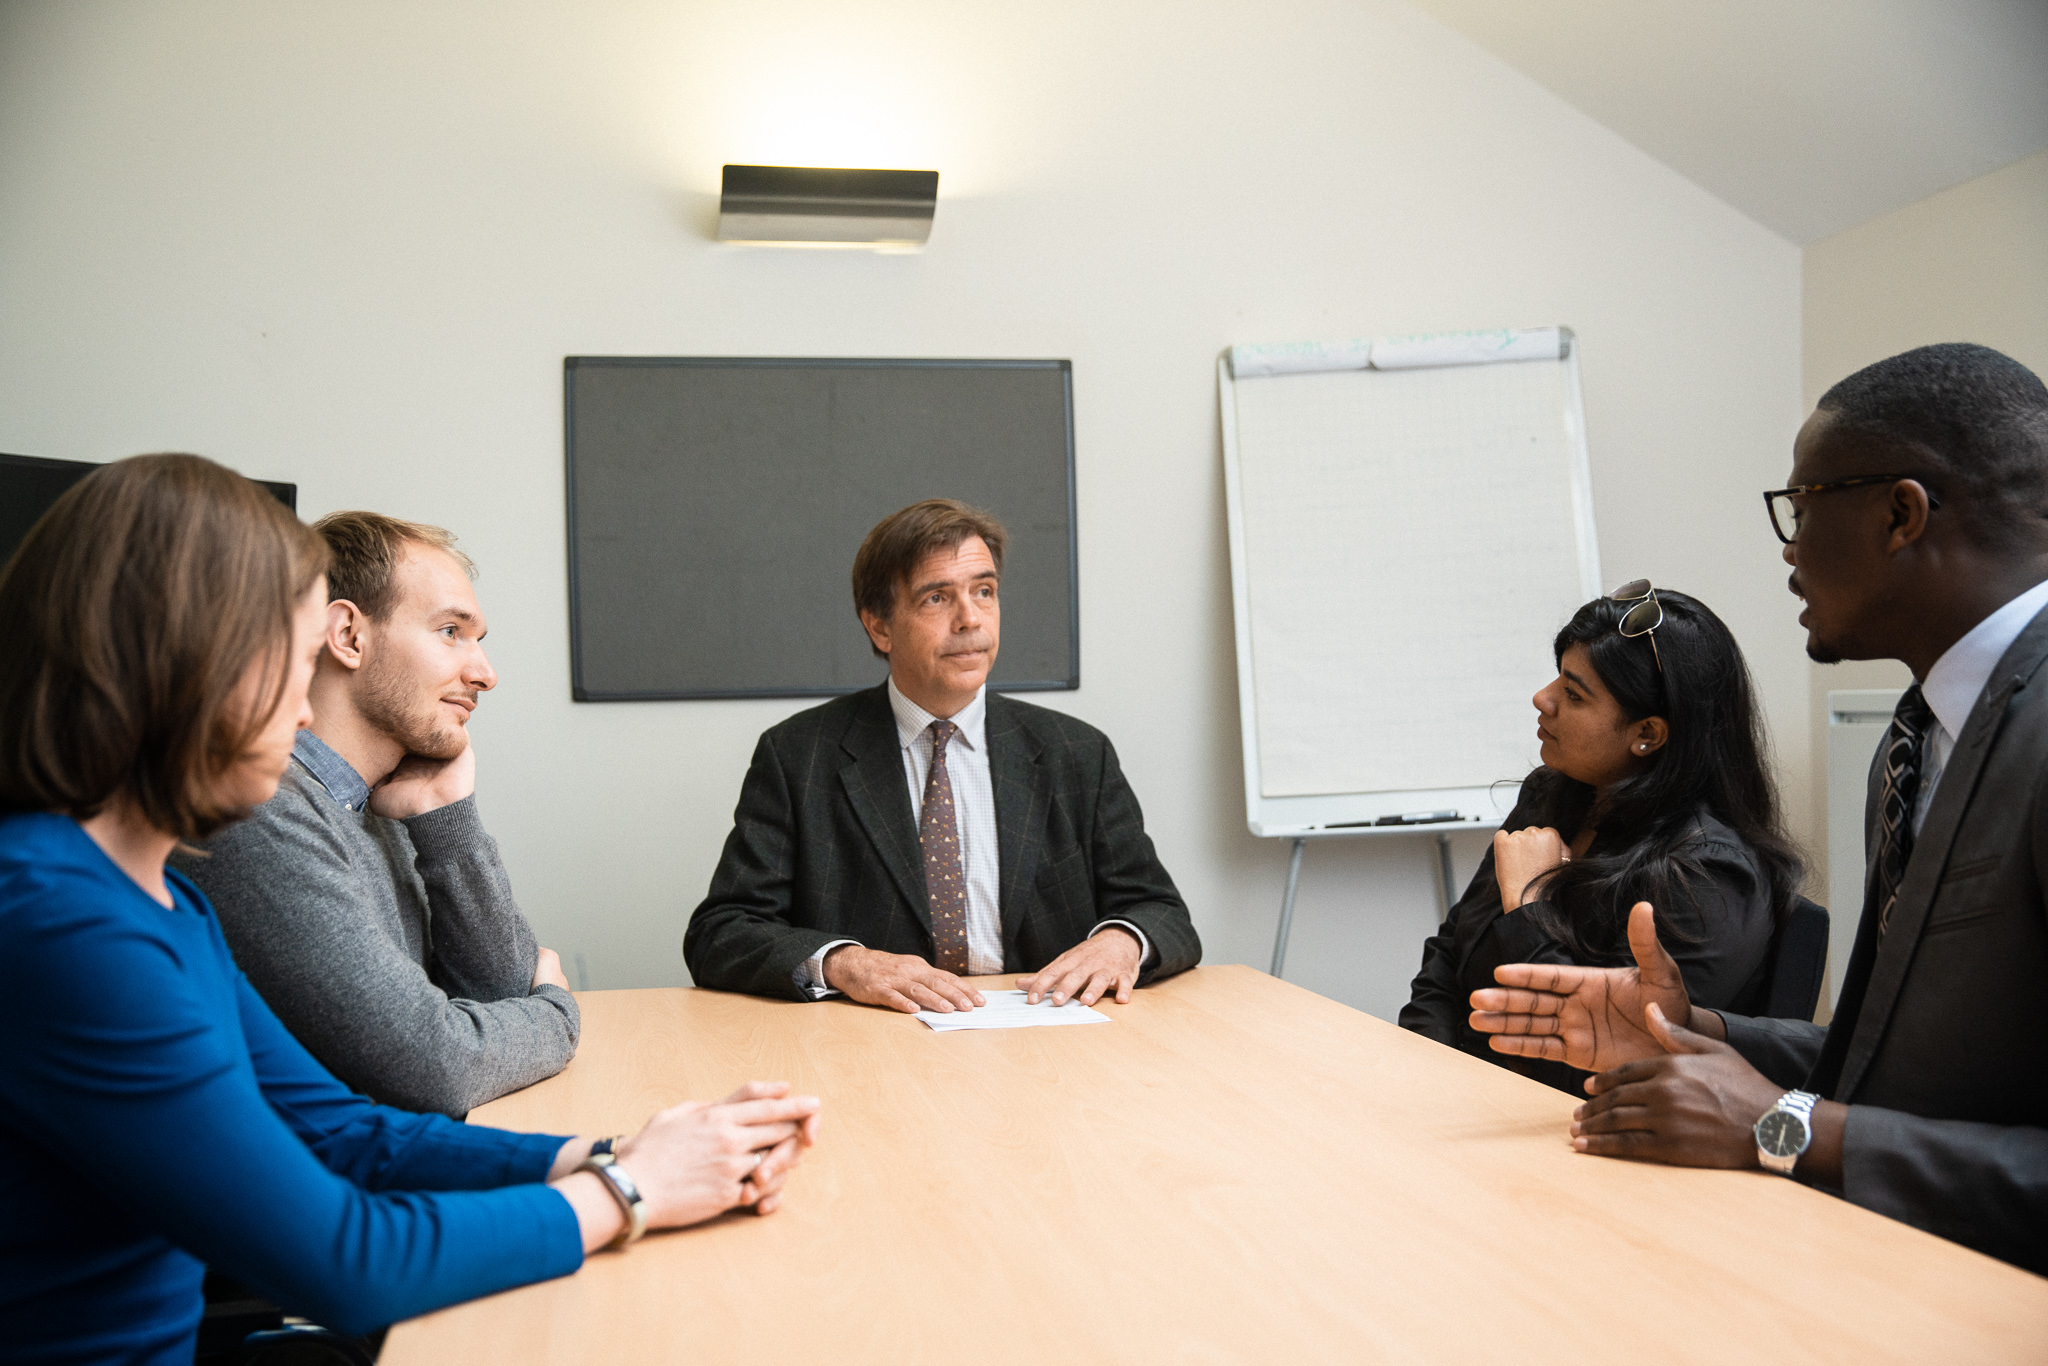 step 1 - reach out to one entity or organisation who might be entangled in a commercial problem and listen to them. If mediation seems to be the right solution, start a joint thinking of how to approach the other party